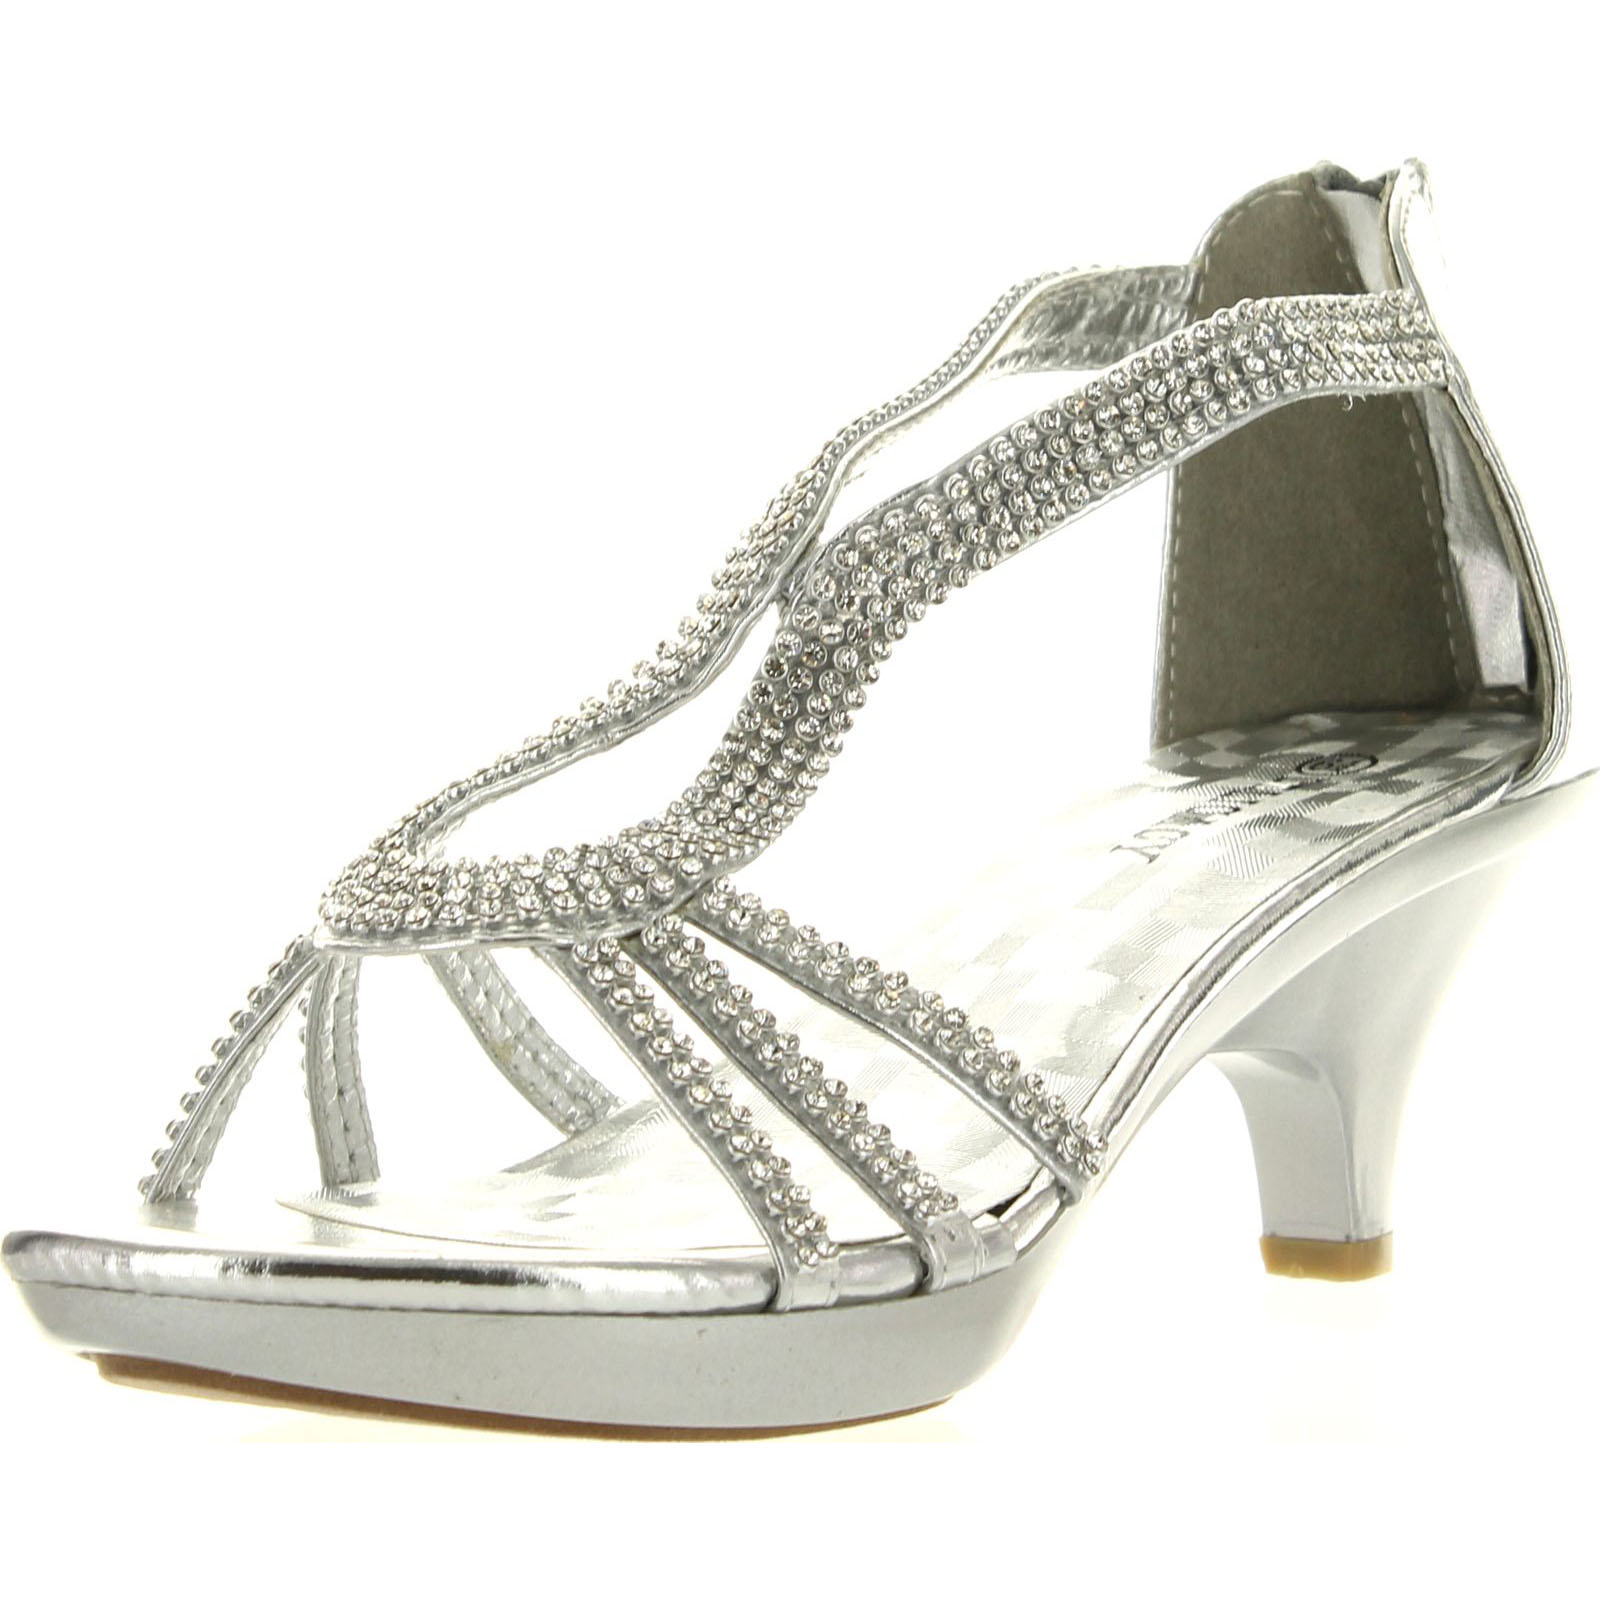 Delicacy Angel 36 Women Dress Sandals Rhinestone Platform Pumps Wedding Bridal Low Heel Shoes